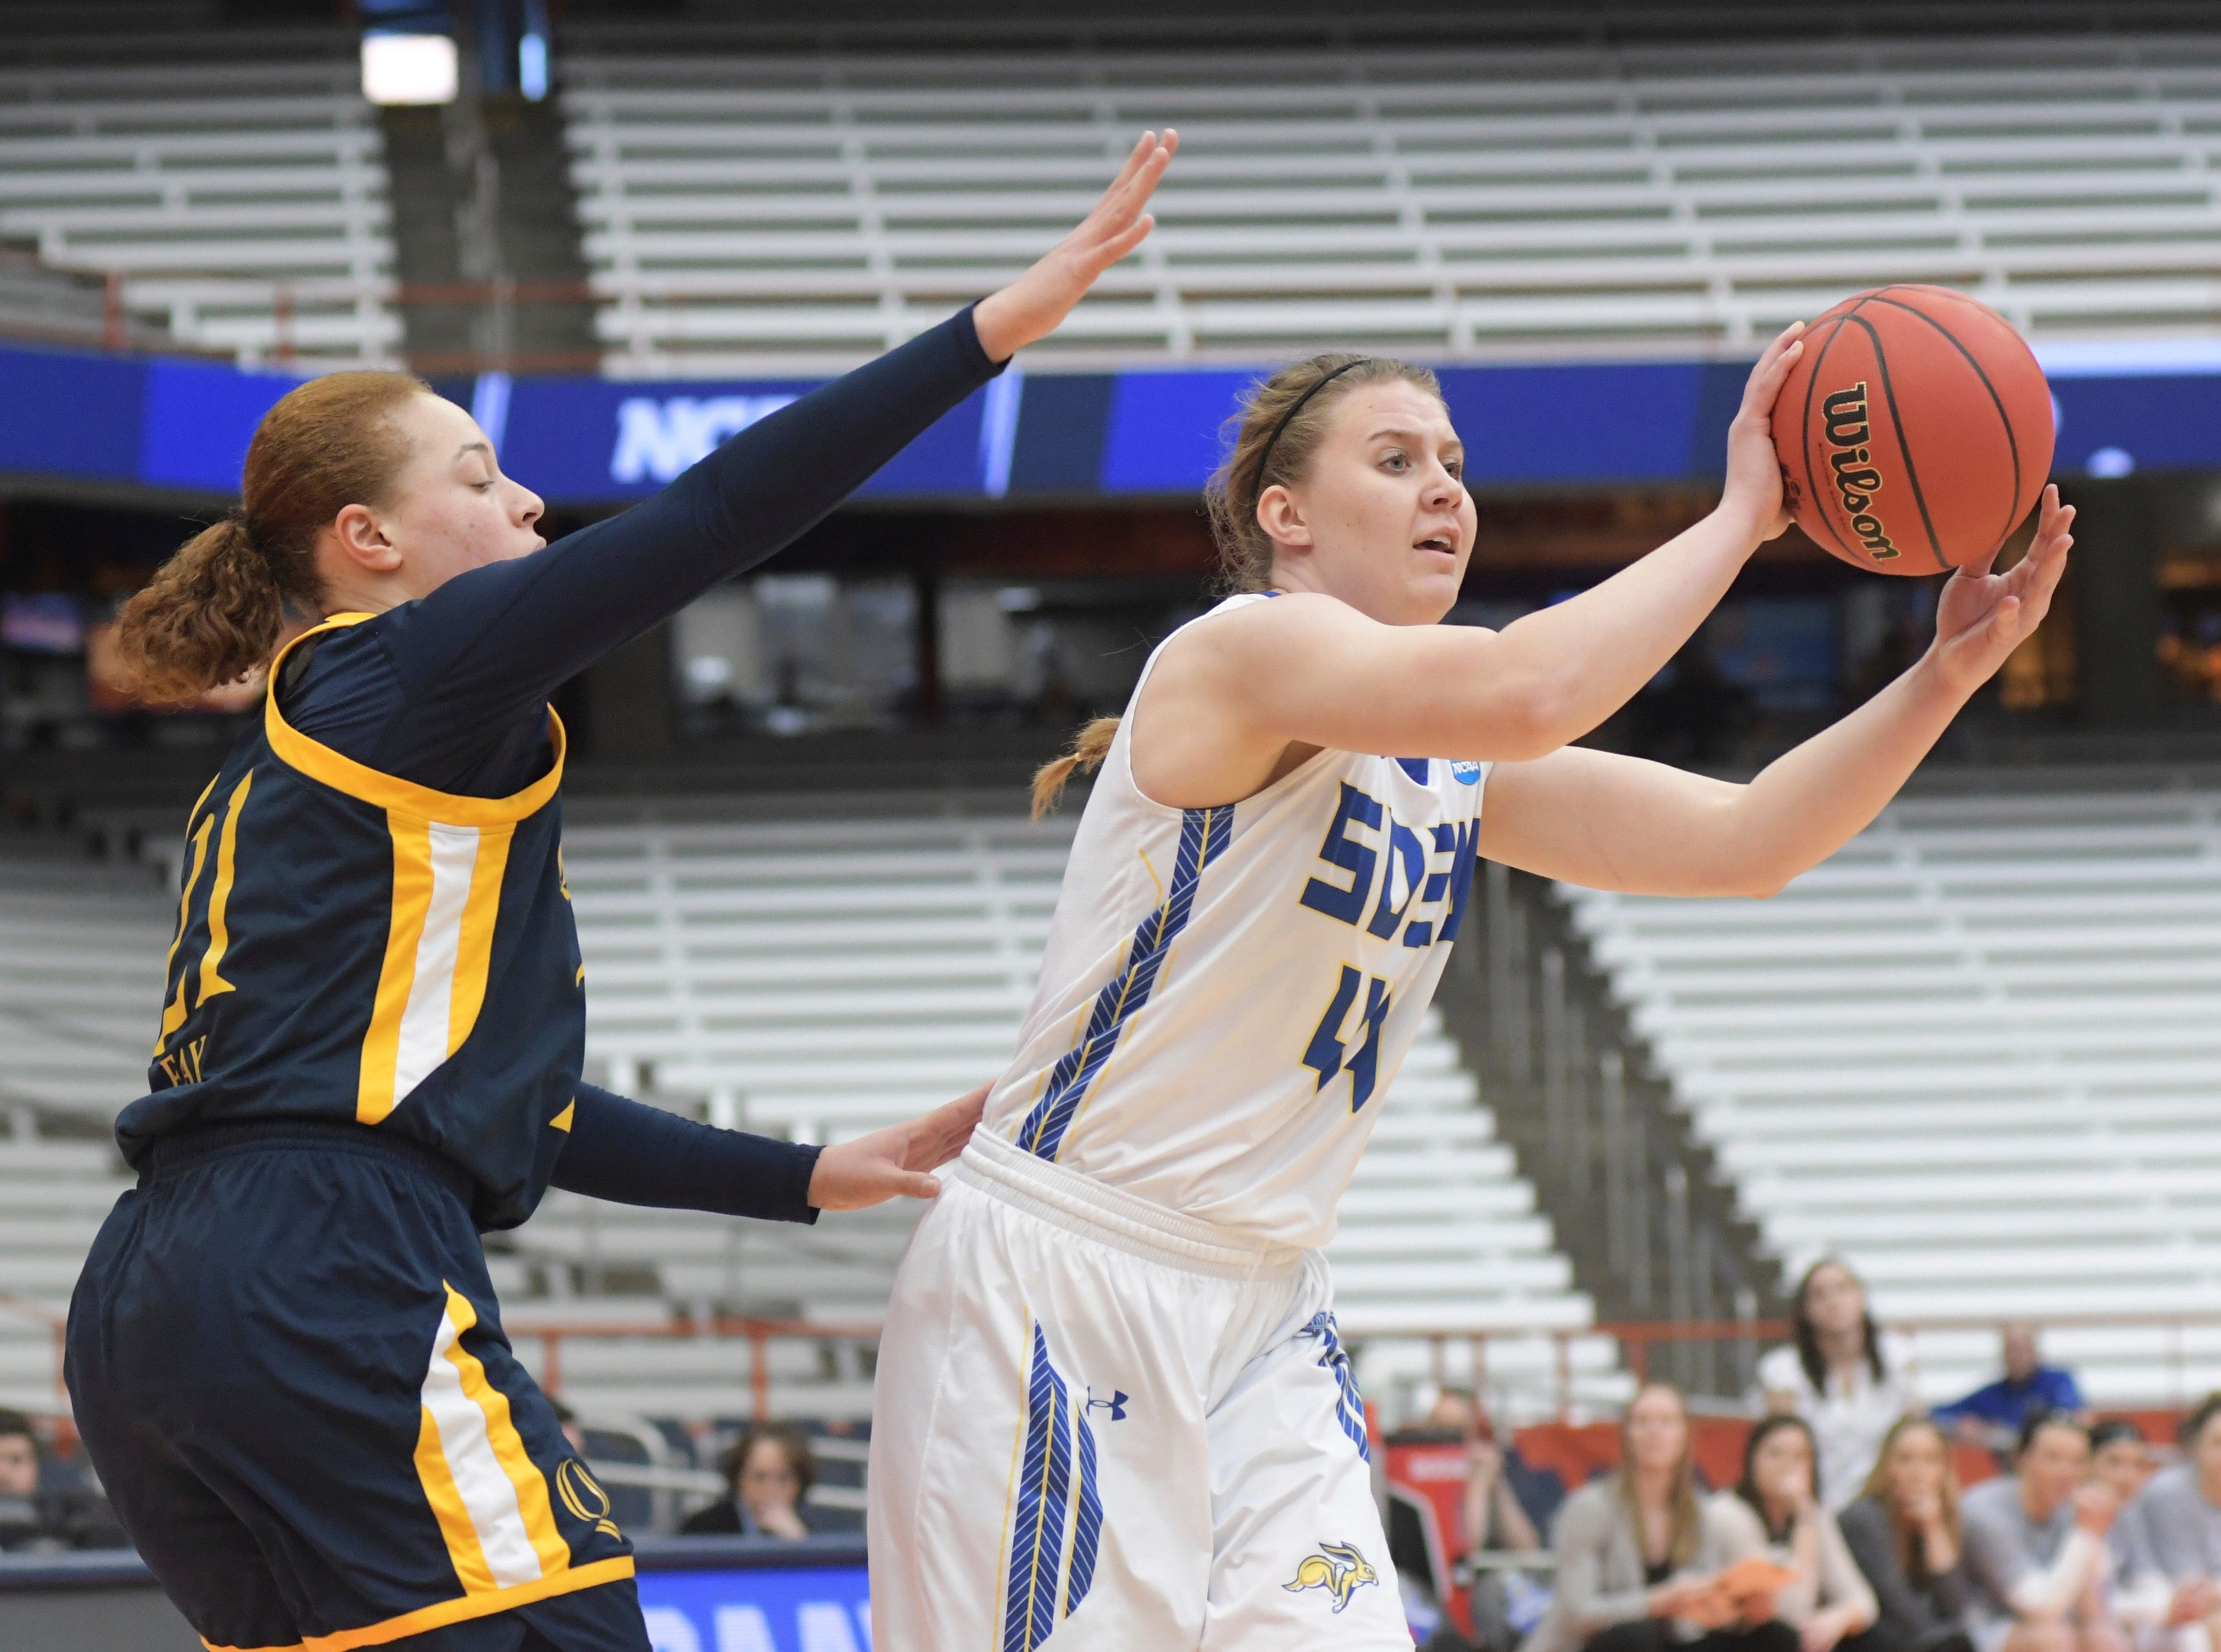 South Dakota State's Myah Selland (44) passes the ball away from Quinnipiac's Jen Fay during of a first-round game in the NCAA women's college basketball tournament in Syracuse, N.Y., Saturday, March 23, 2019. South Dakota State won 76-65. (AP Photo/Heather Ainsworth)